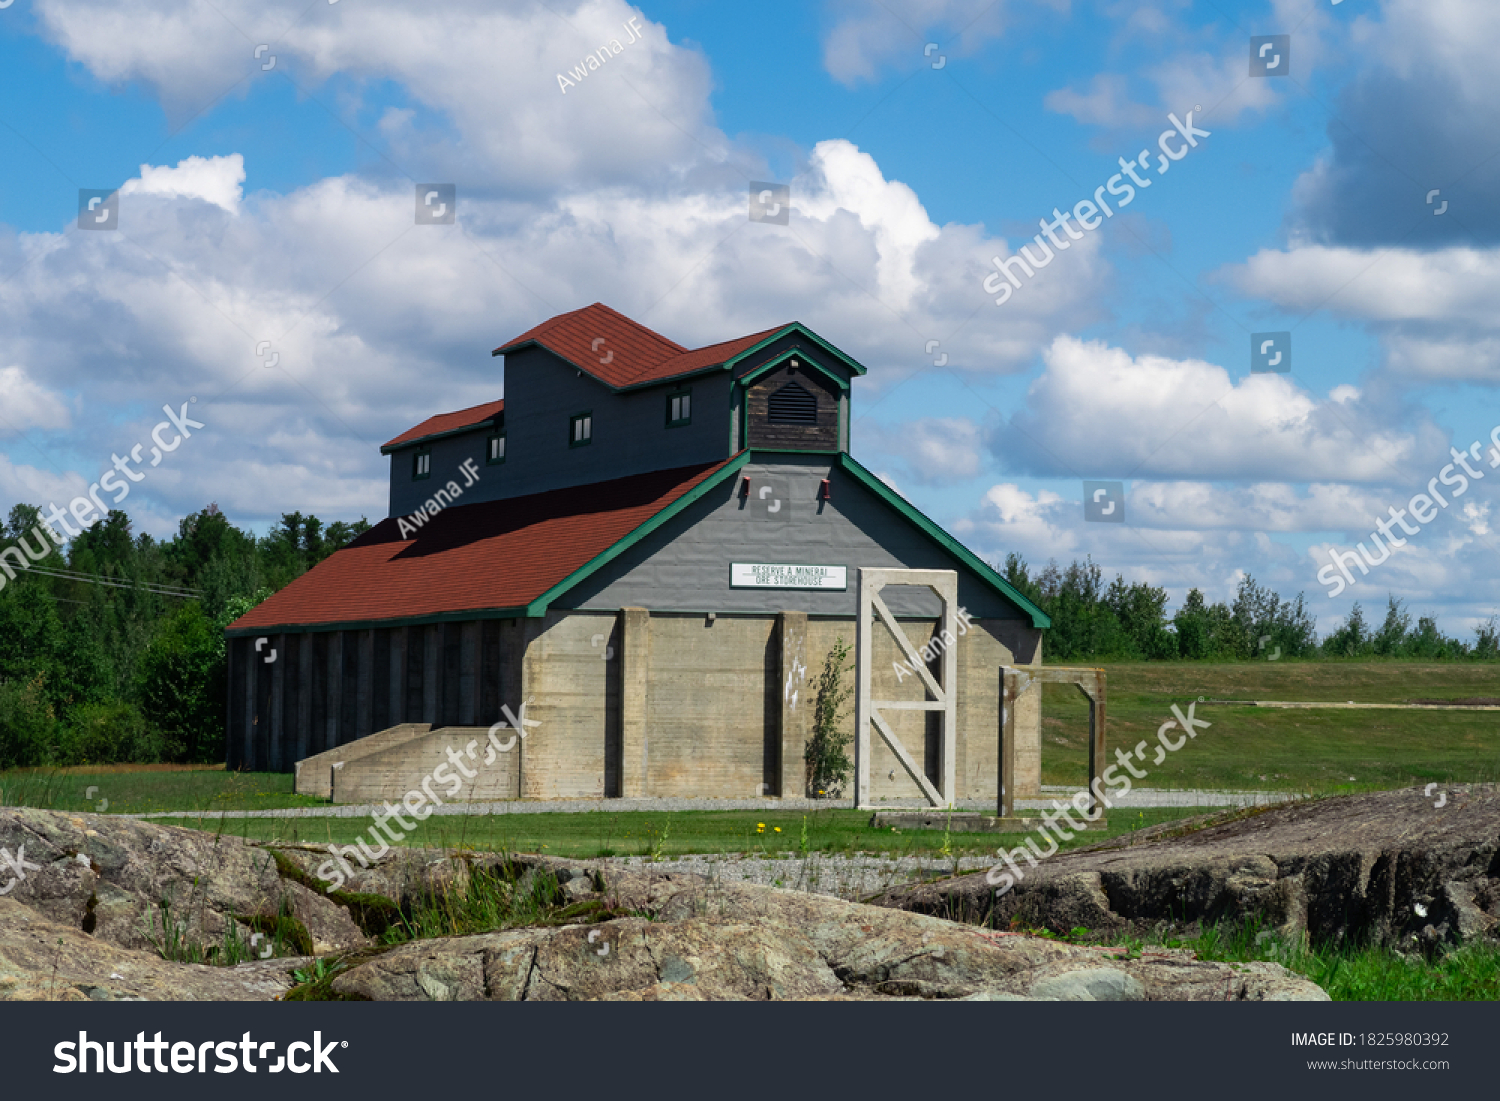 stock-photo-val-d-or-canada-july-exterio